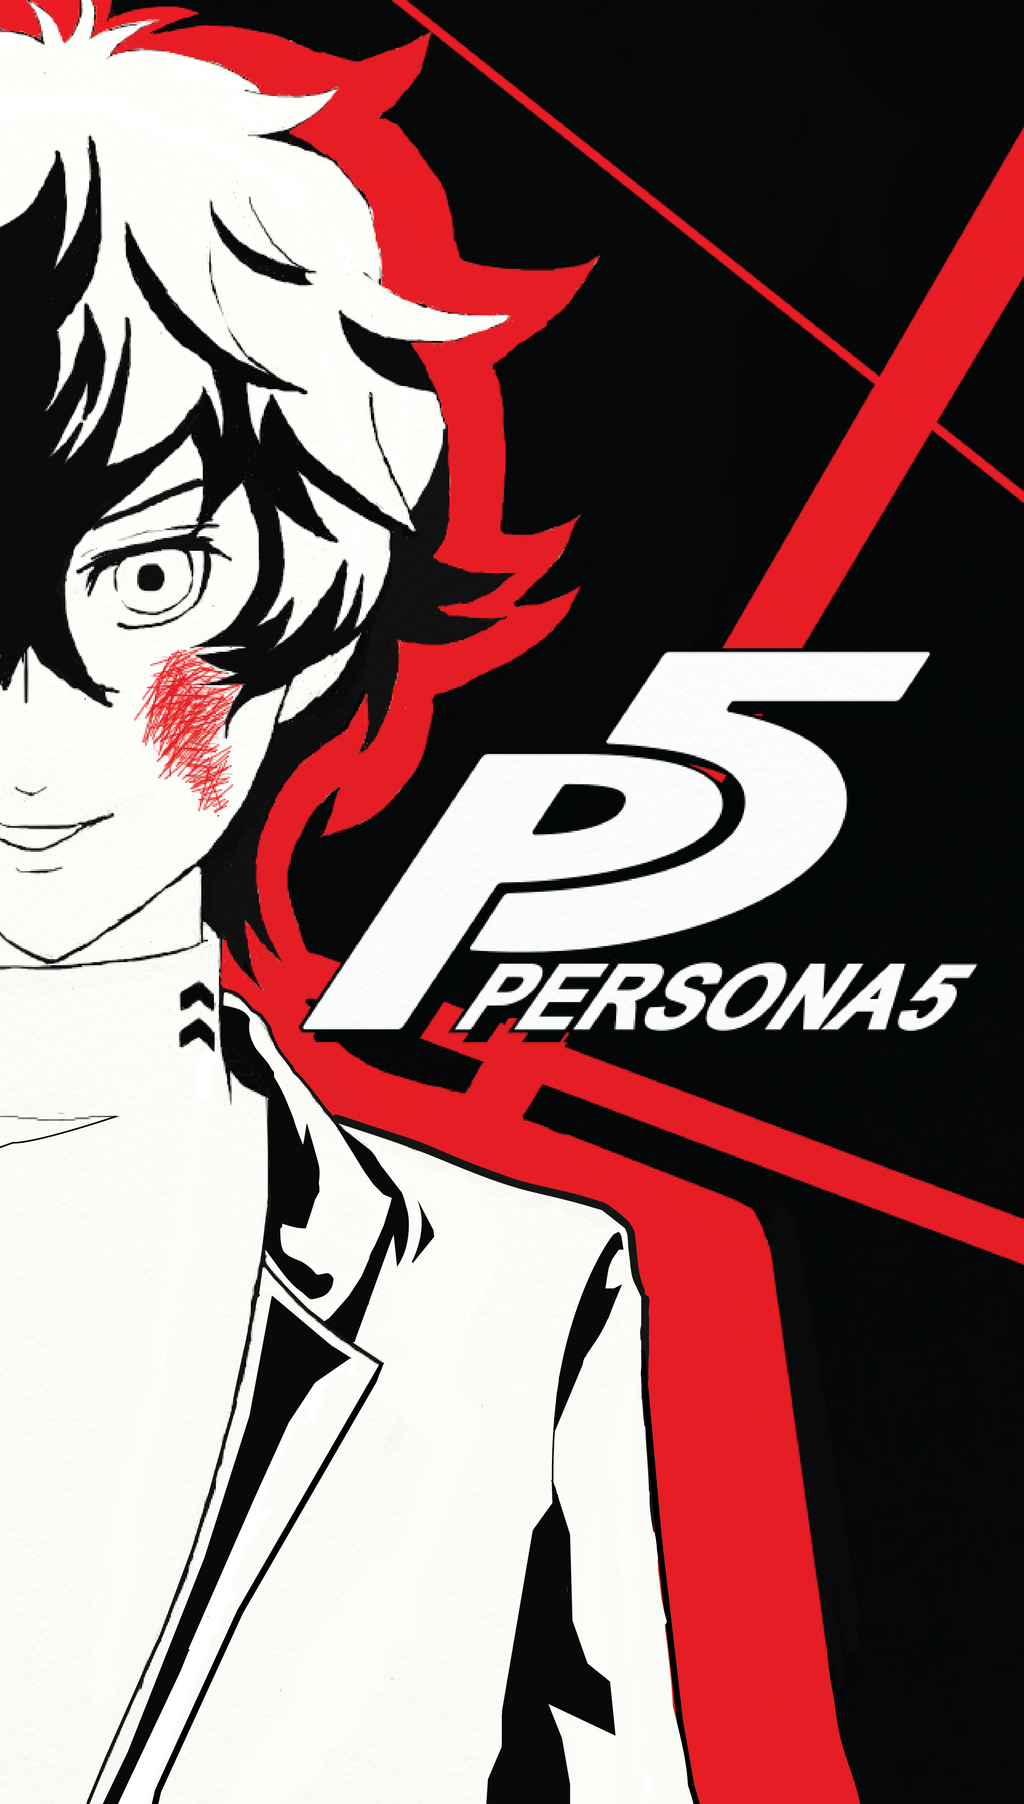 Persona 3 iphone 5 wallpaper - Persona 5 Iphone Wallpaper By Destructorkhan Persona 5 Iphone Wallpaper By Destructorkhan